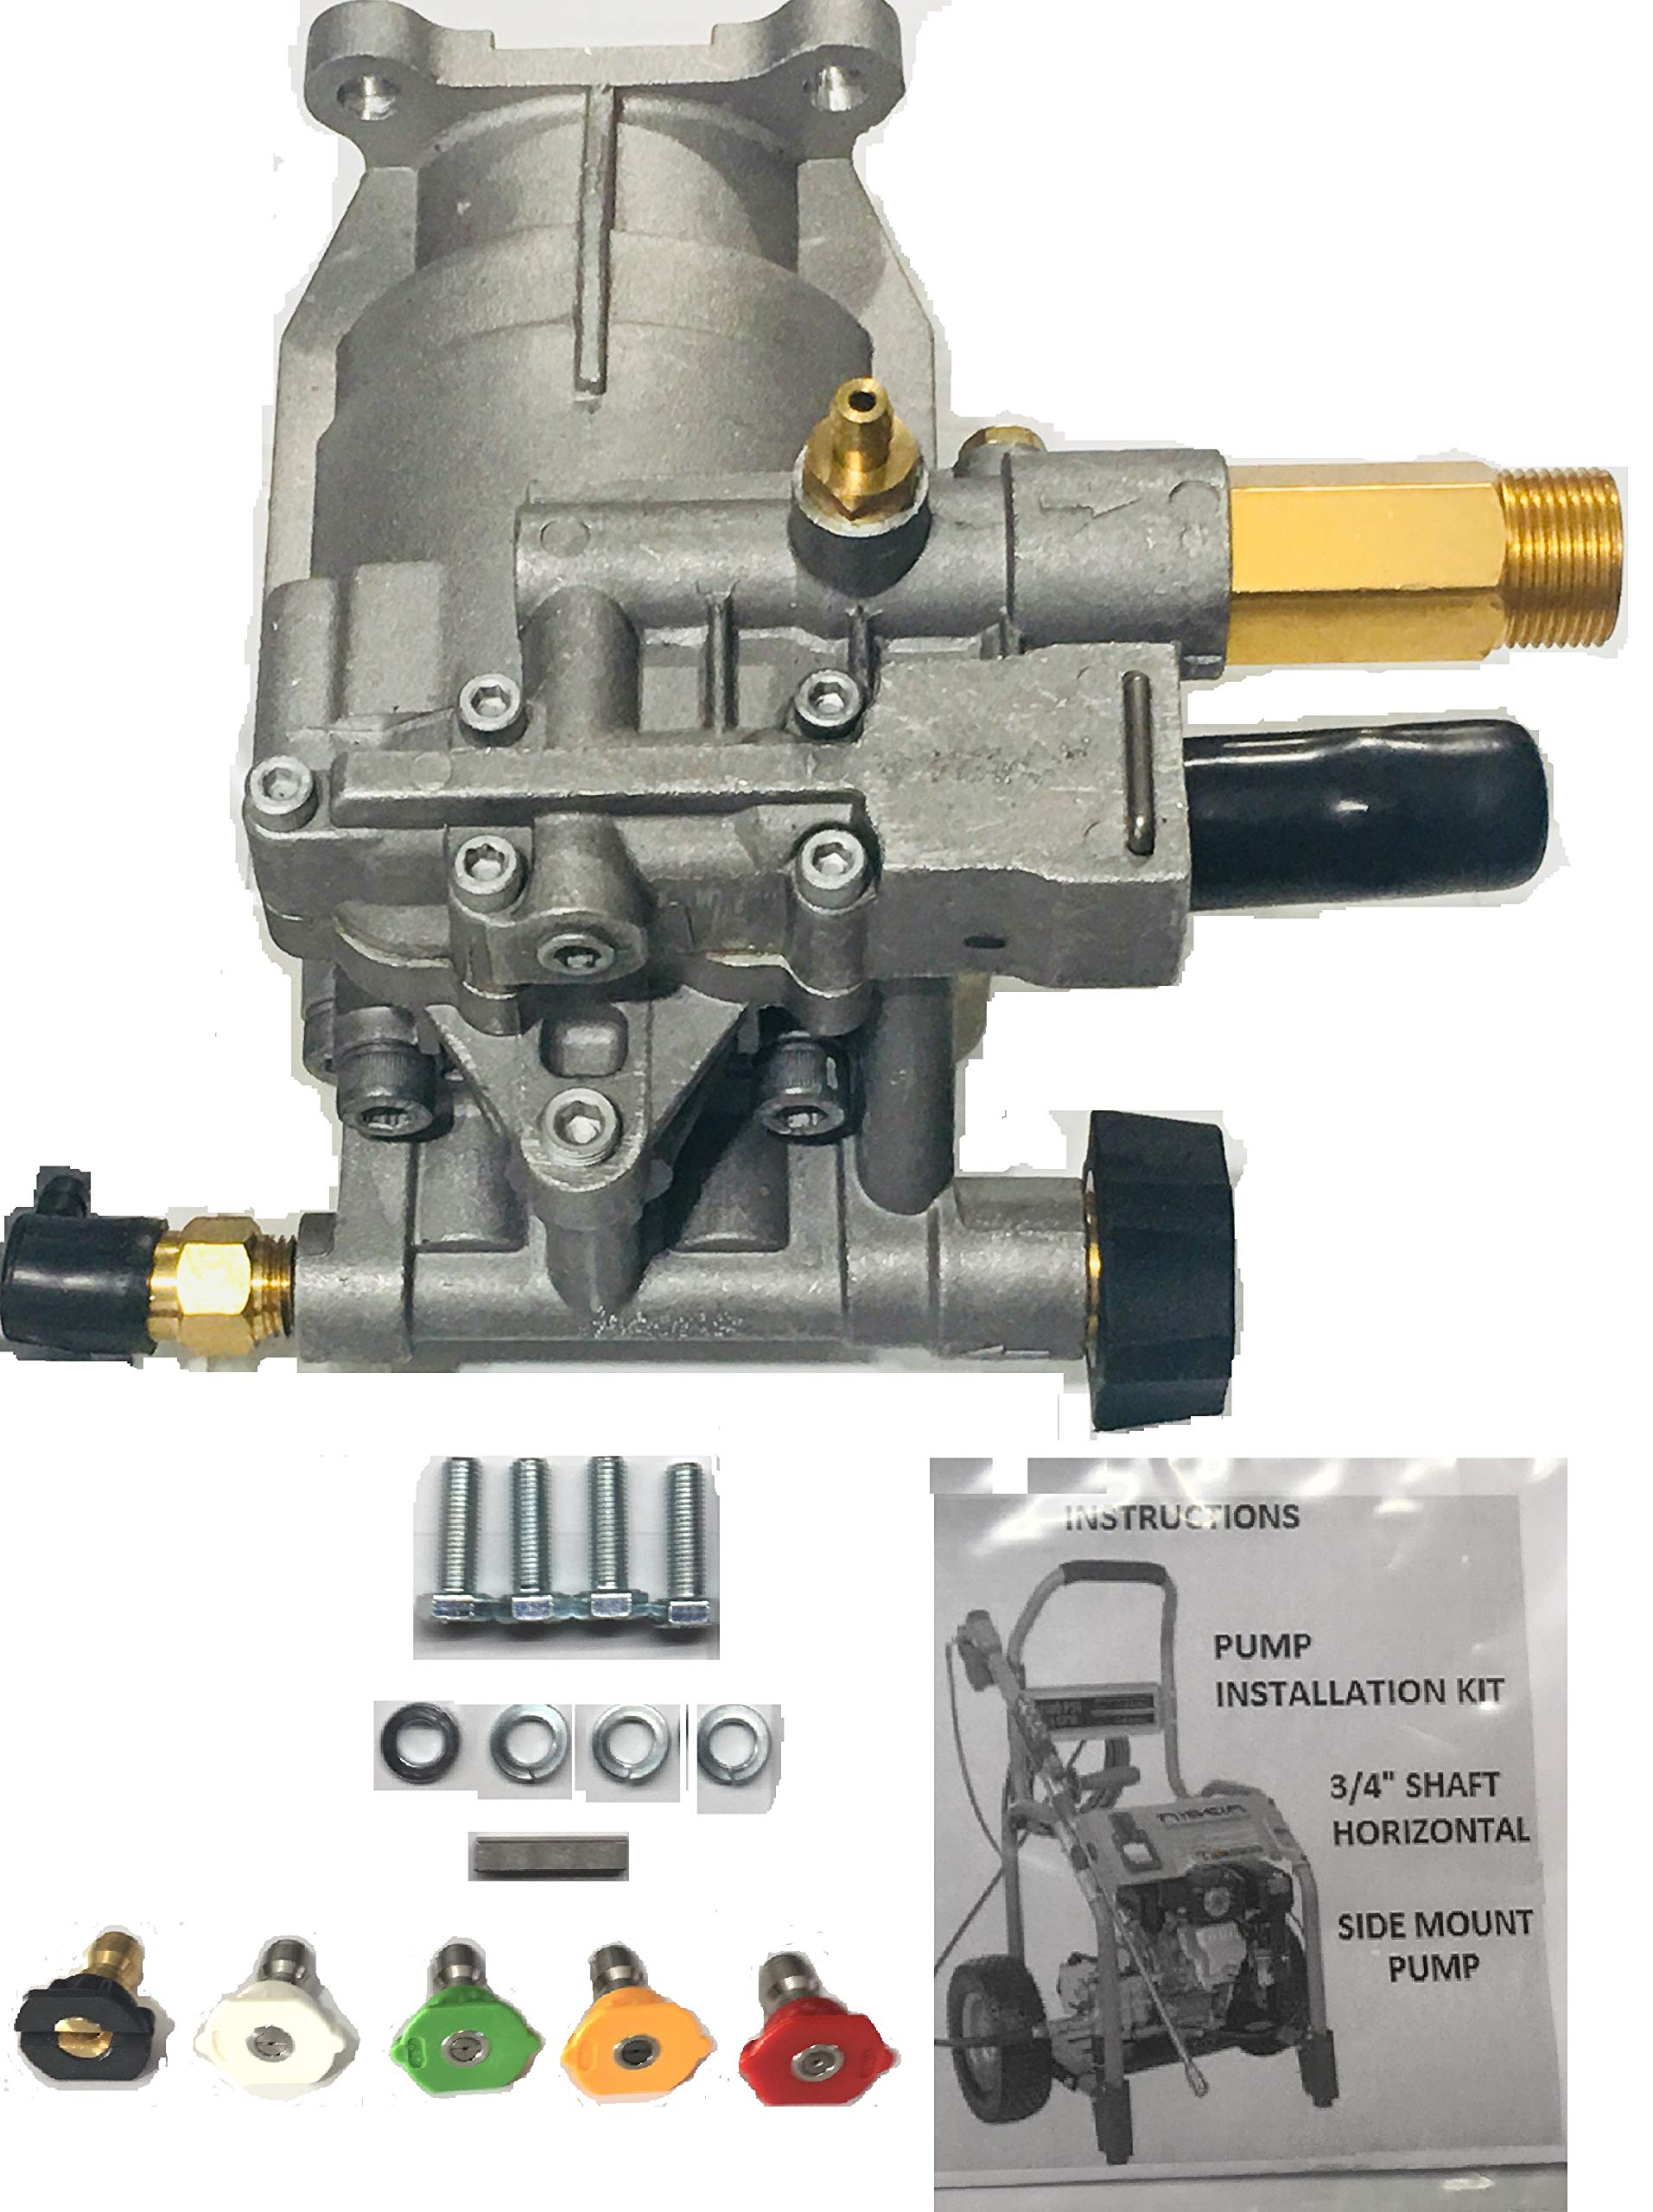 Homelite New 2700 PSI Pressure Washer Pump Replaces 308418007 Models HL252300, UT80522, UT80953, UT80522B, UT80953B, PS80522, PS80903B, UT80522A, UT80953A, UT80522D, UT80522E Includes 5 New QC Nozzles by Homelite